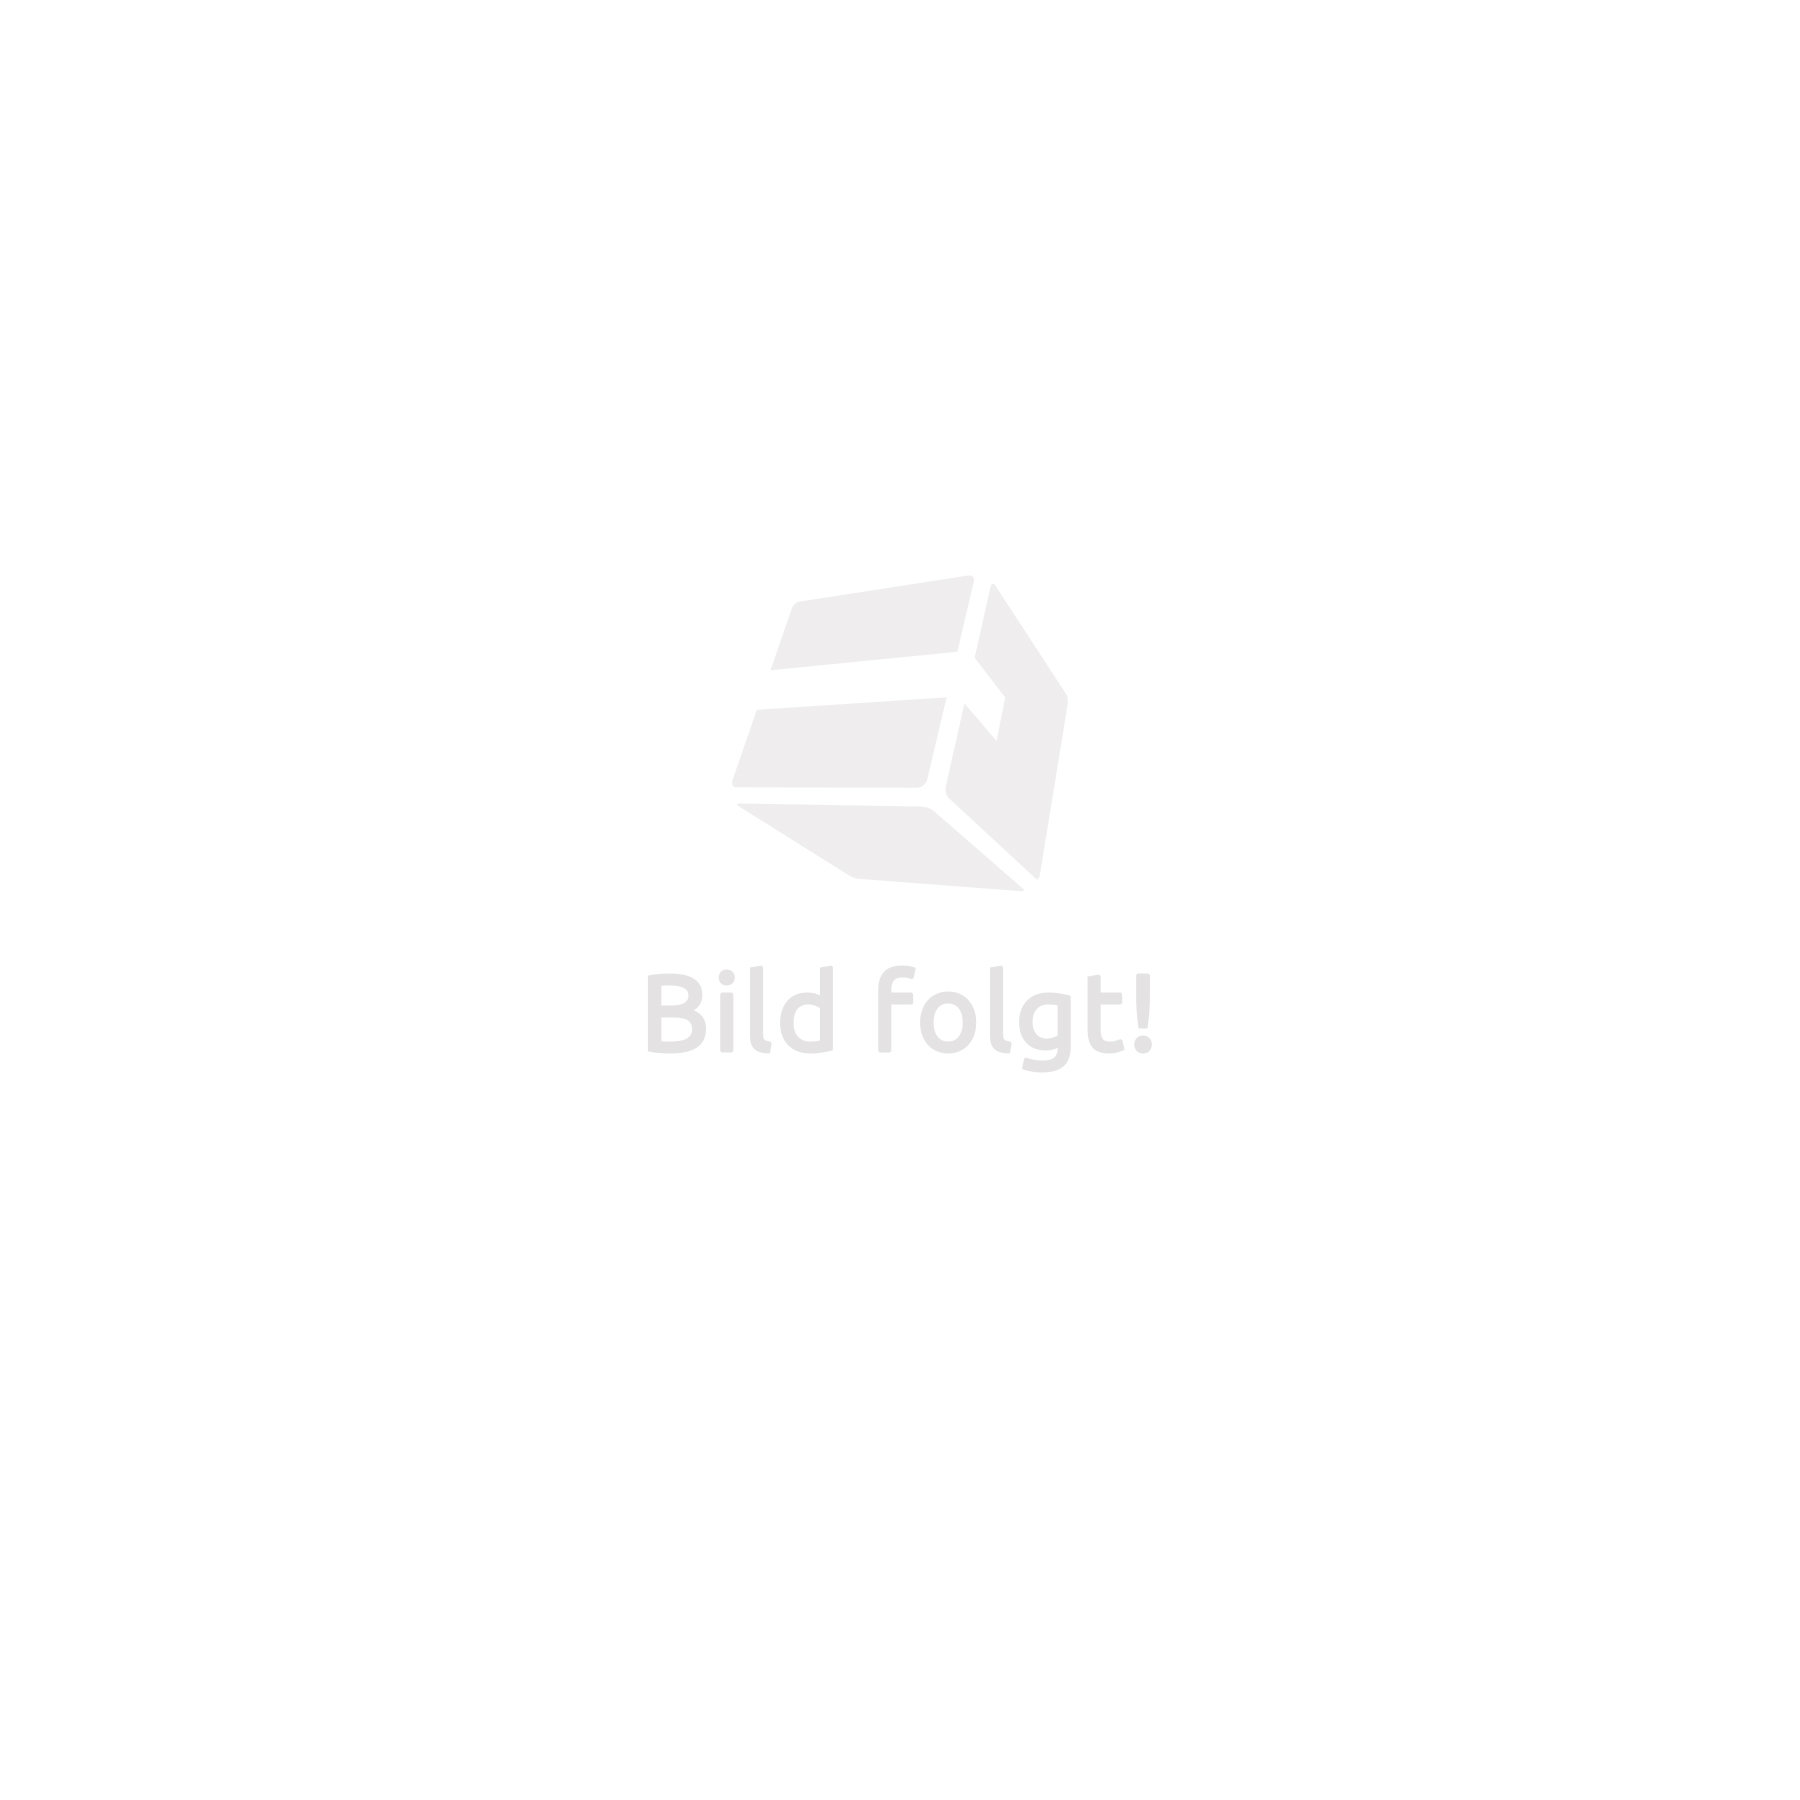 chaise longue de jardin transat multi positions pliable tectake. Black Bedroom Furniture Sets. Home Design Ideas